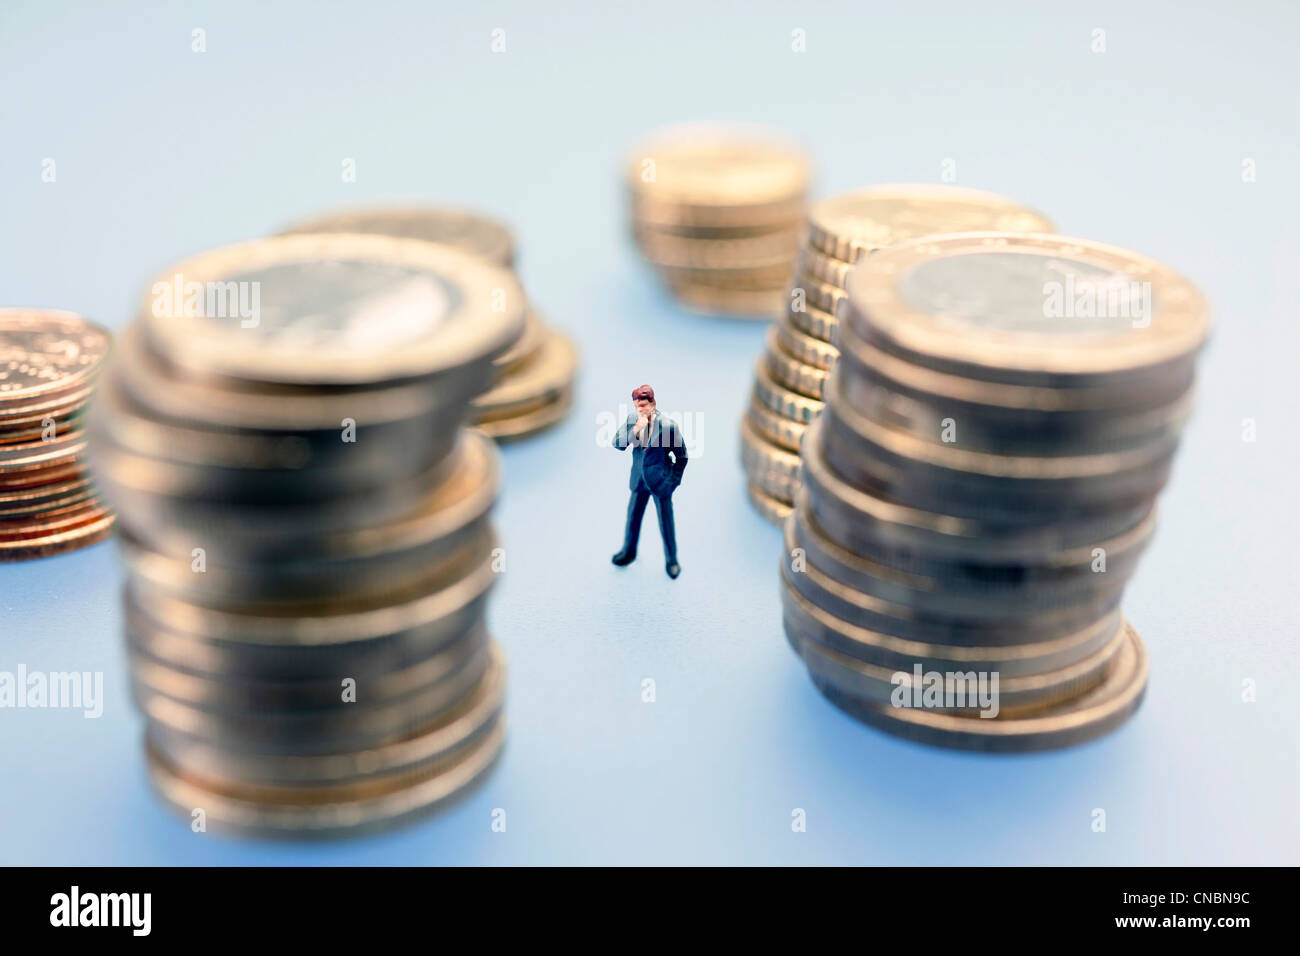 Miniature figure of a businessman surrounded Euro coins - Stock Image